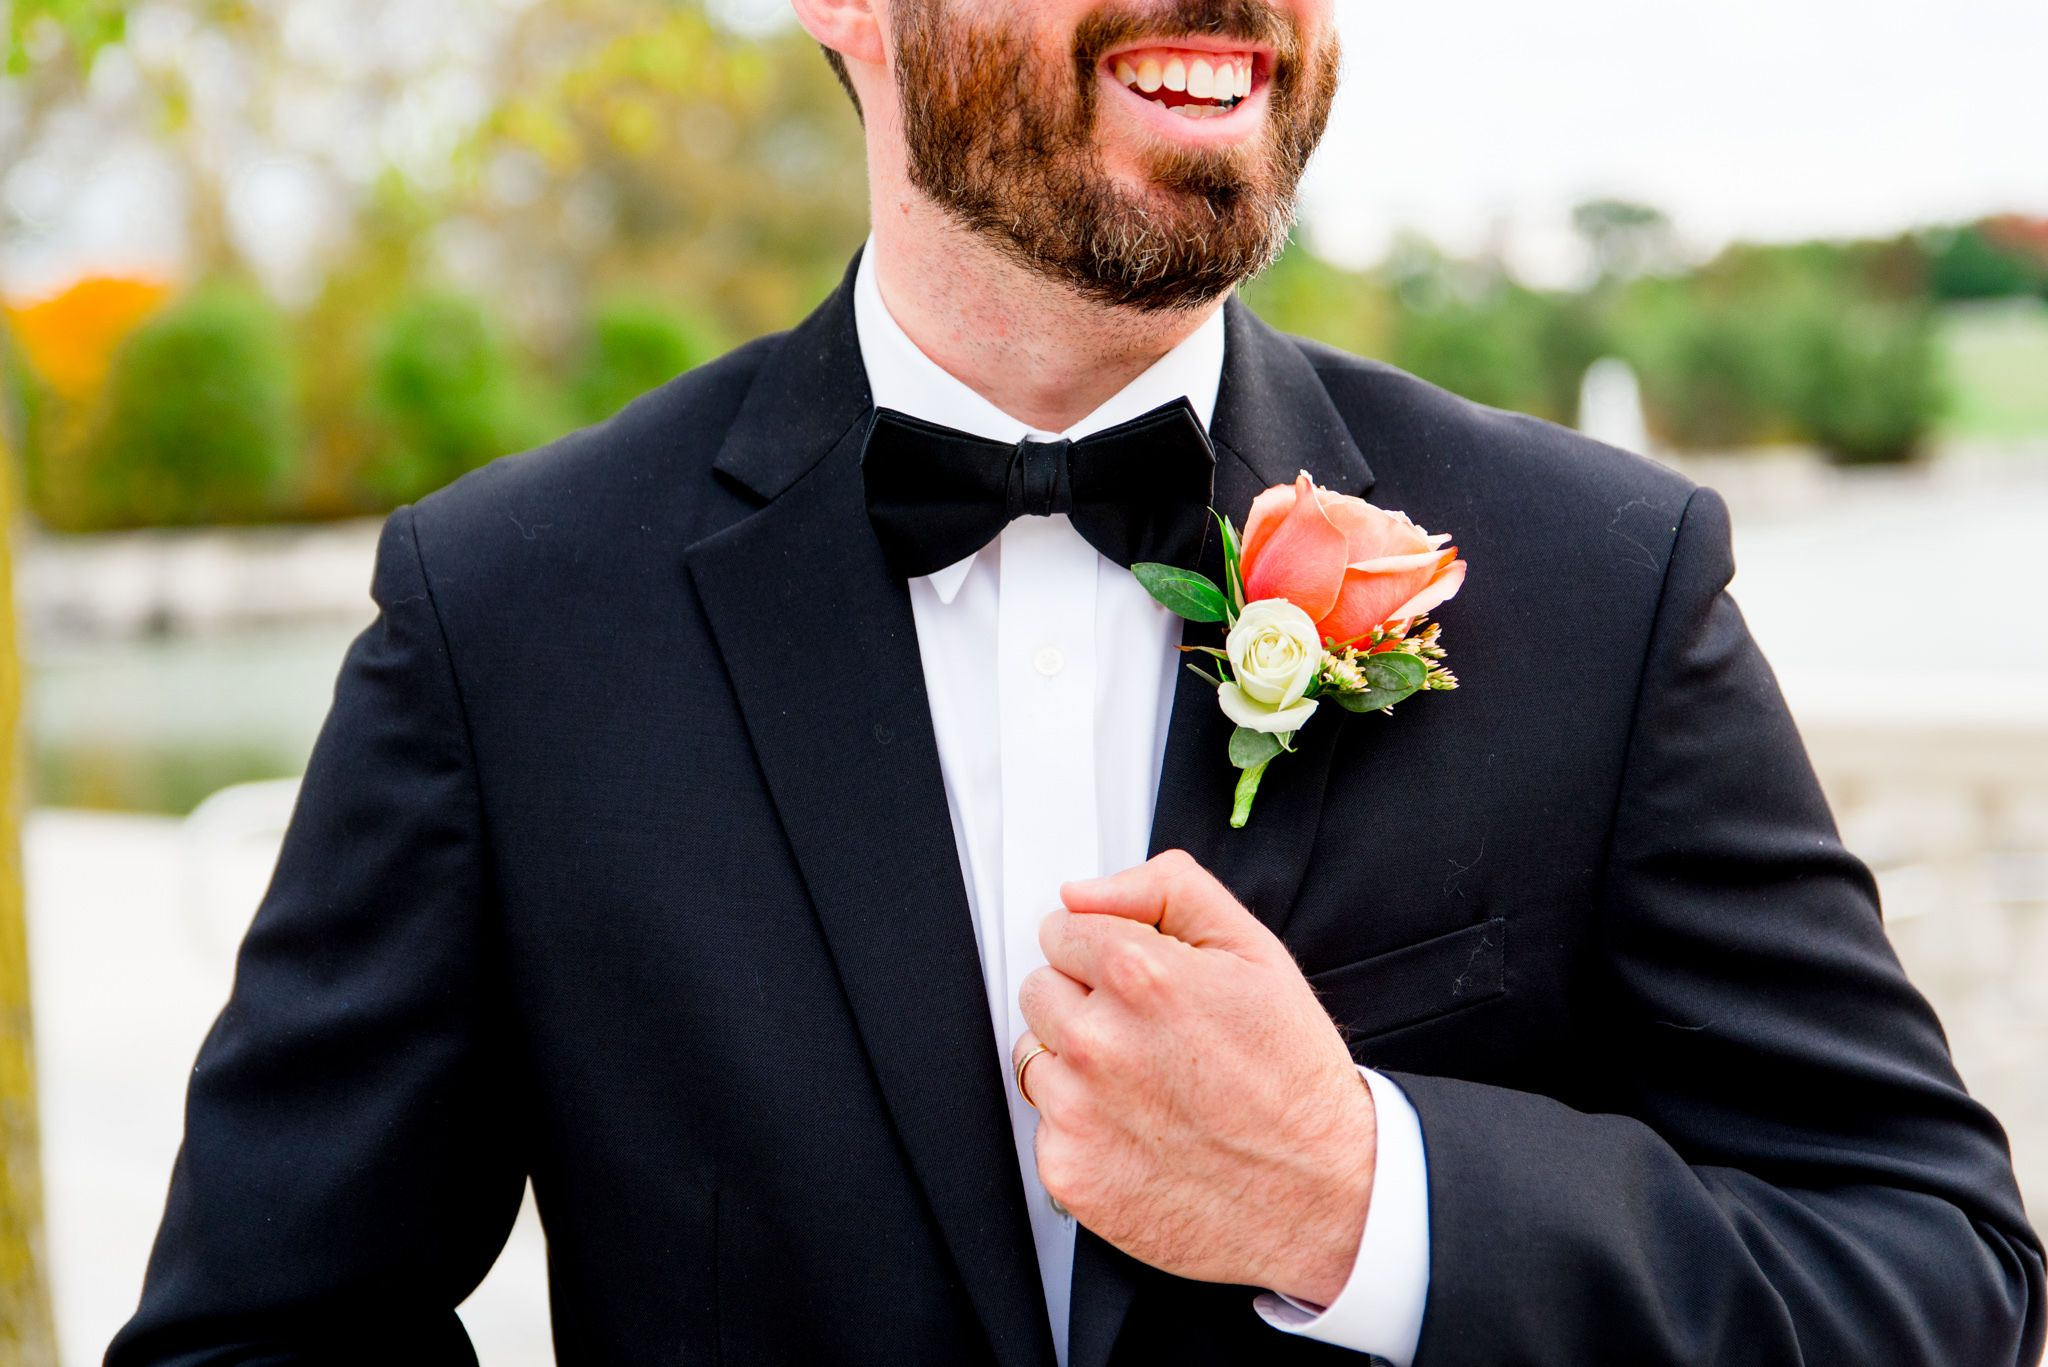 groom's smile and bowtie with coral rose boutonniere showing for St. Louis fall wedding portraits for Chicago couples